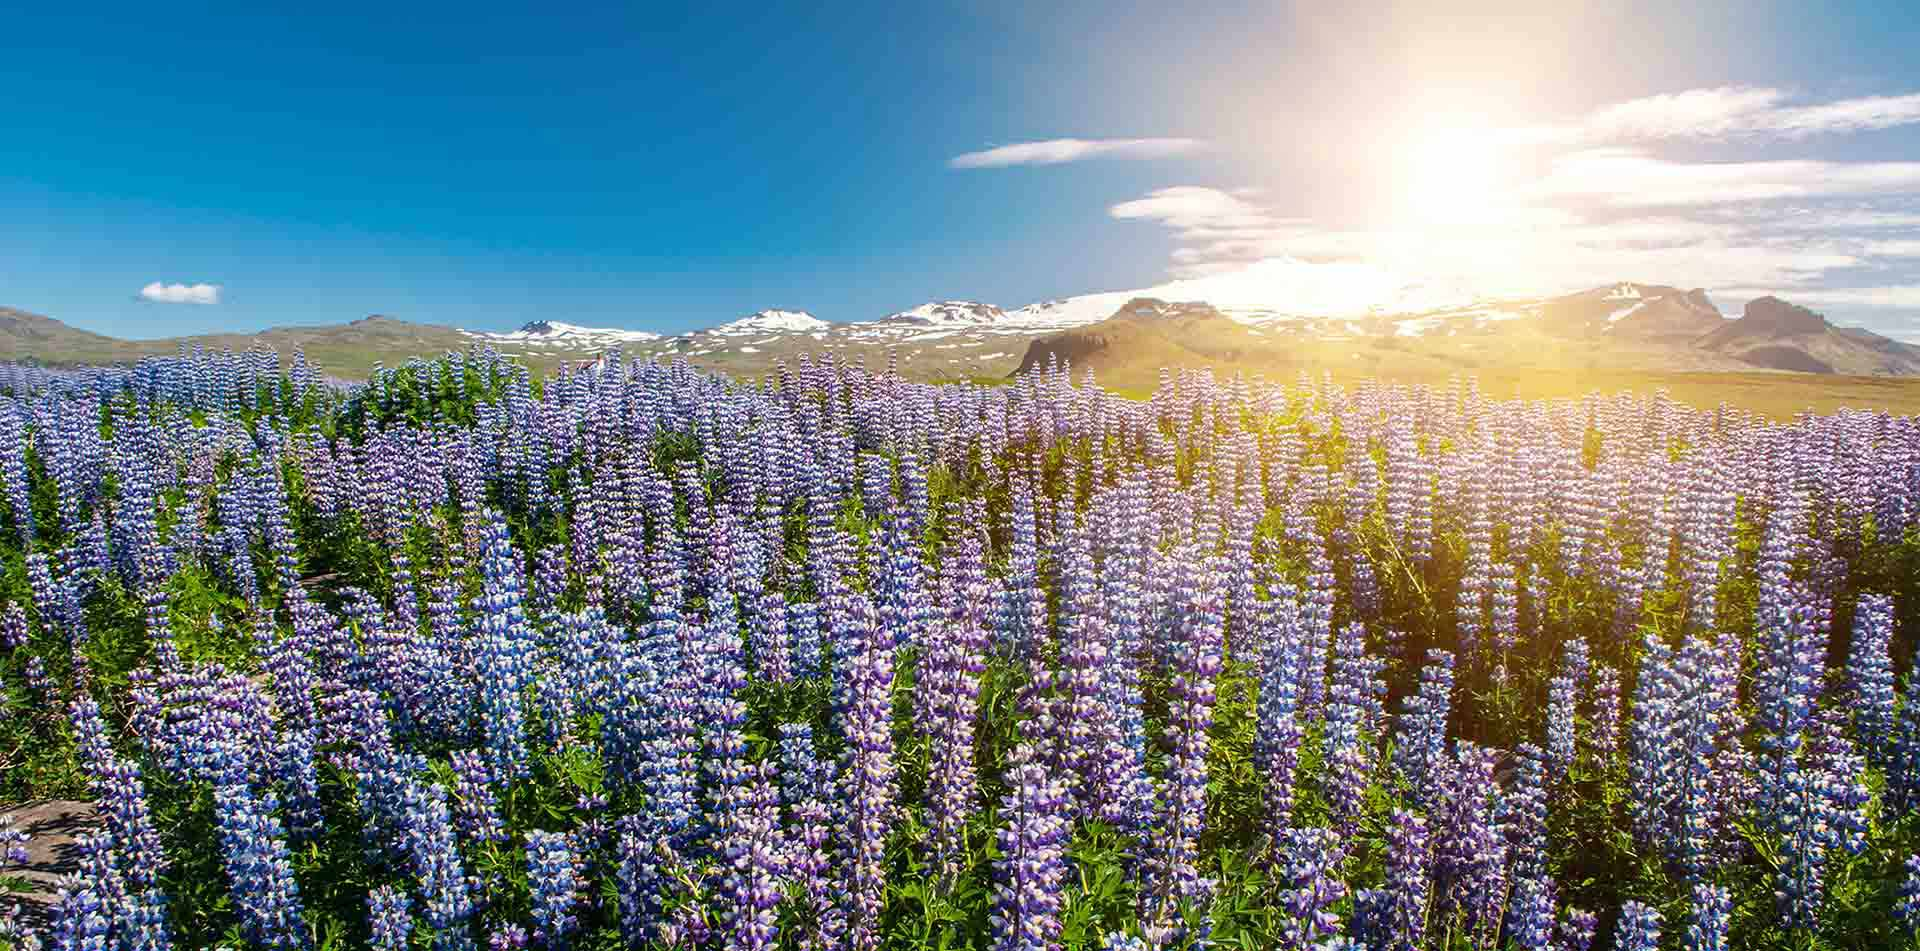 Flowers in Lupin Snaefellsnes, Iceland